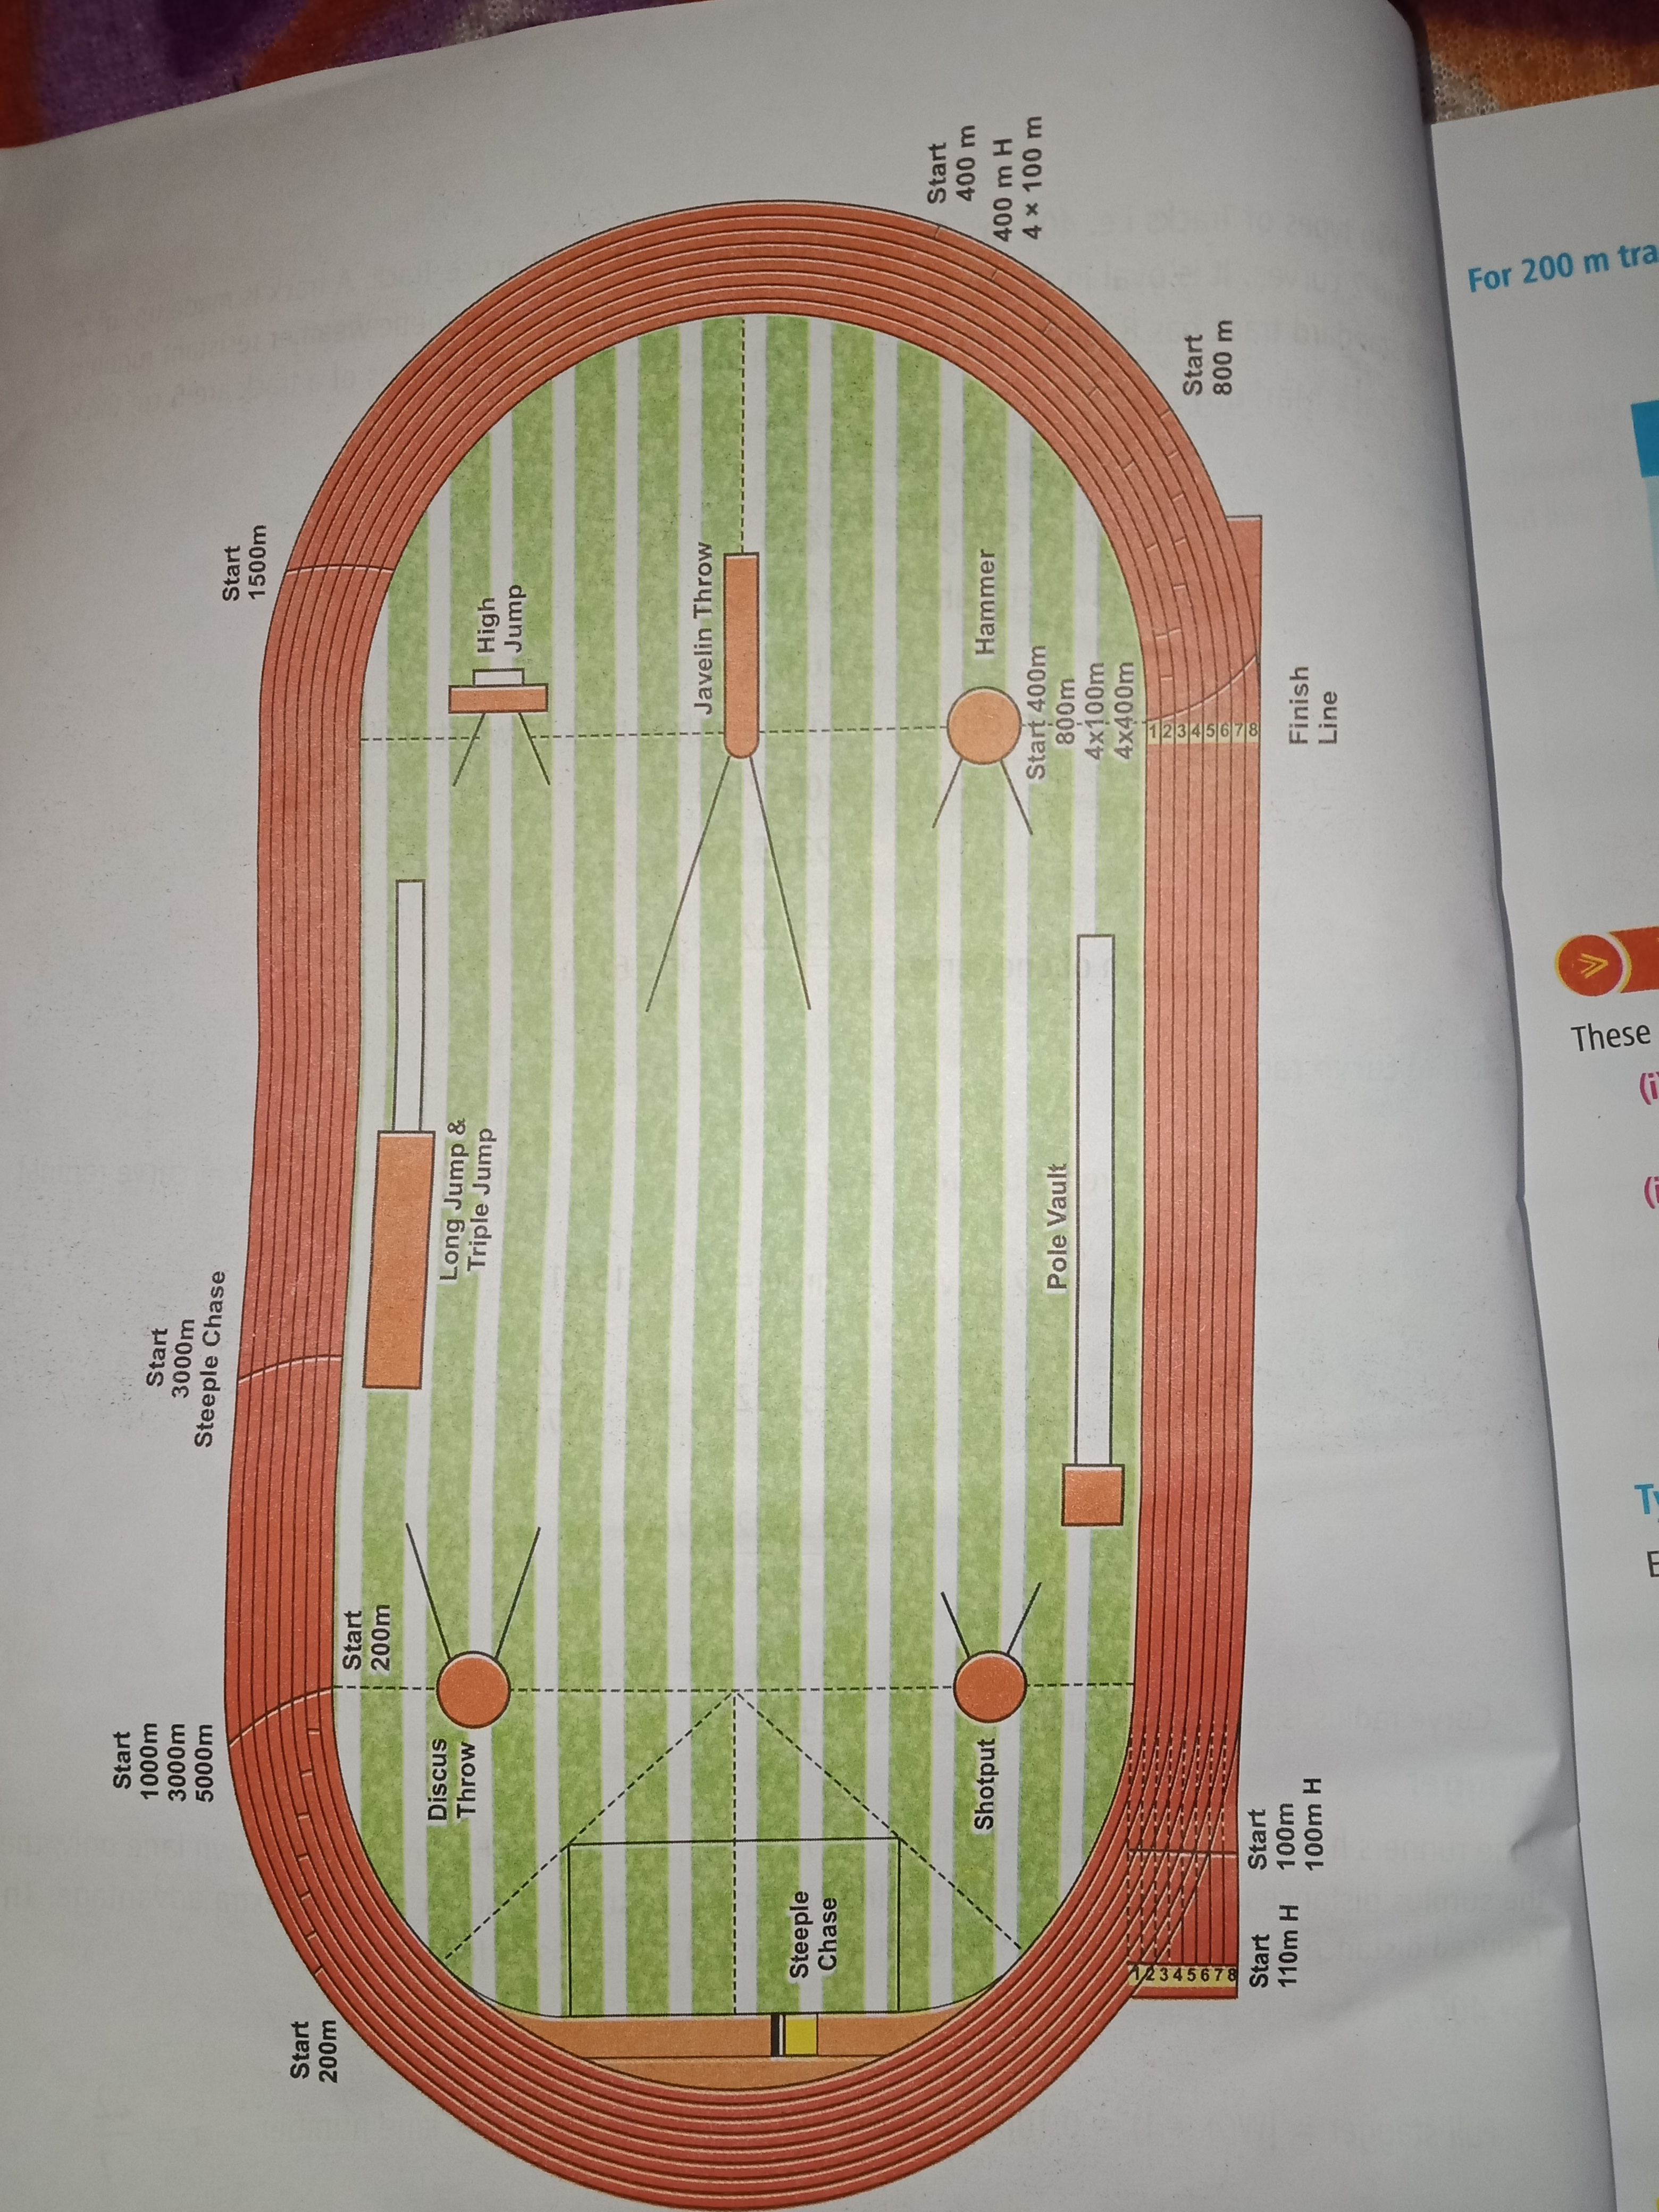 track and field diagram 5 wire label of 400m with computation brainly in download jpg